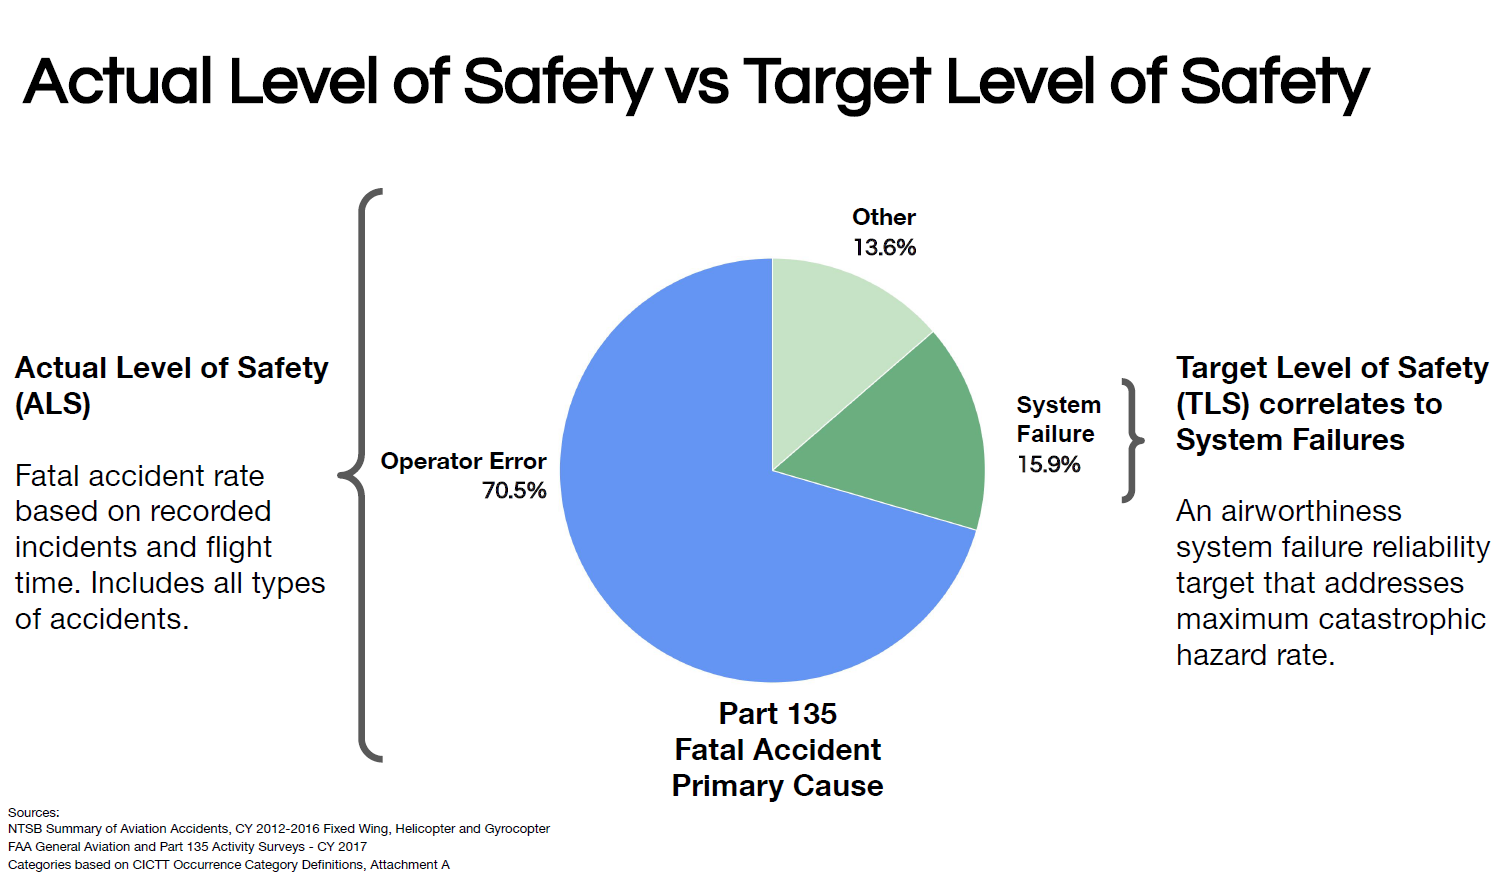 Mark Moore slide on actual level of safety